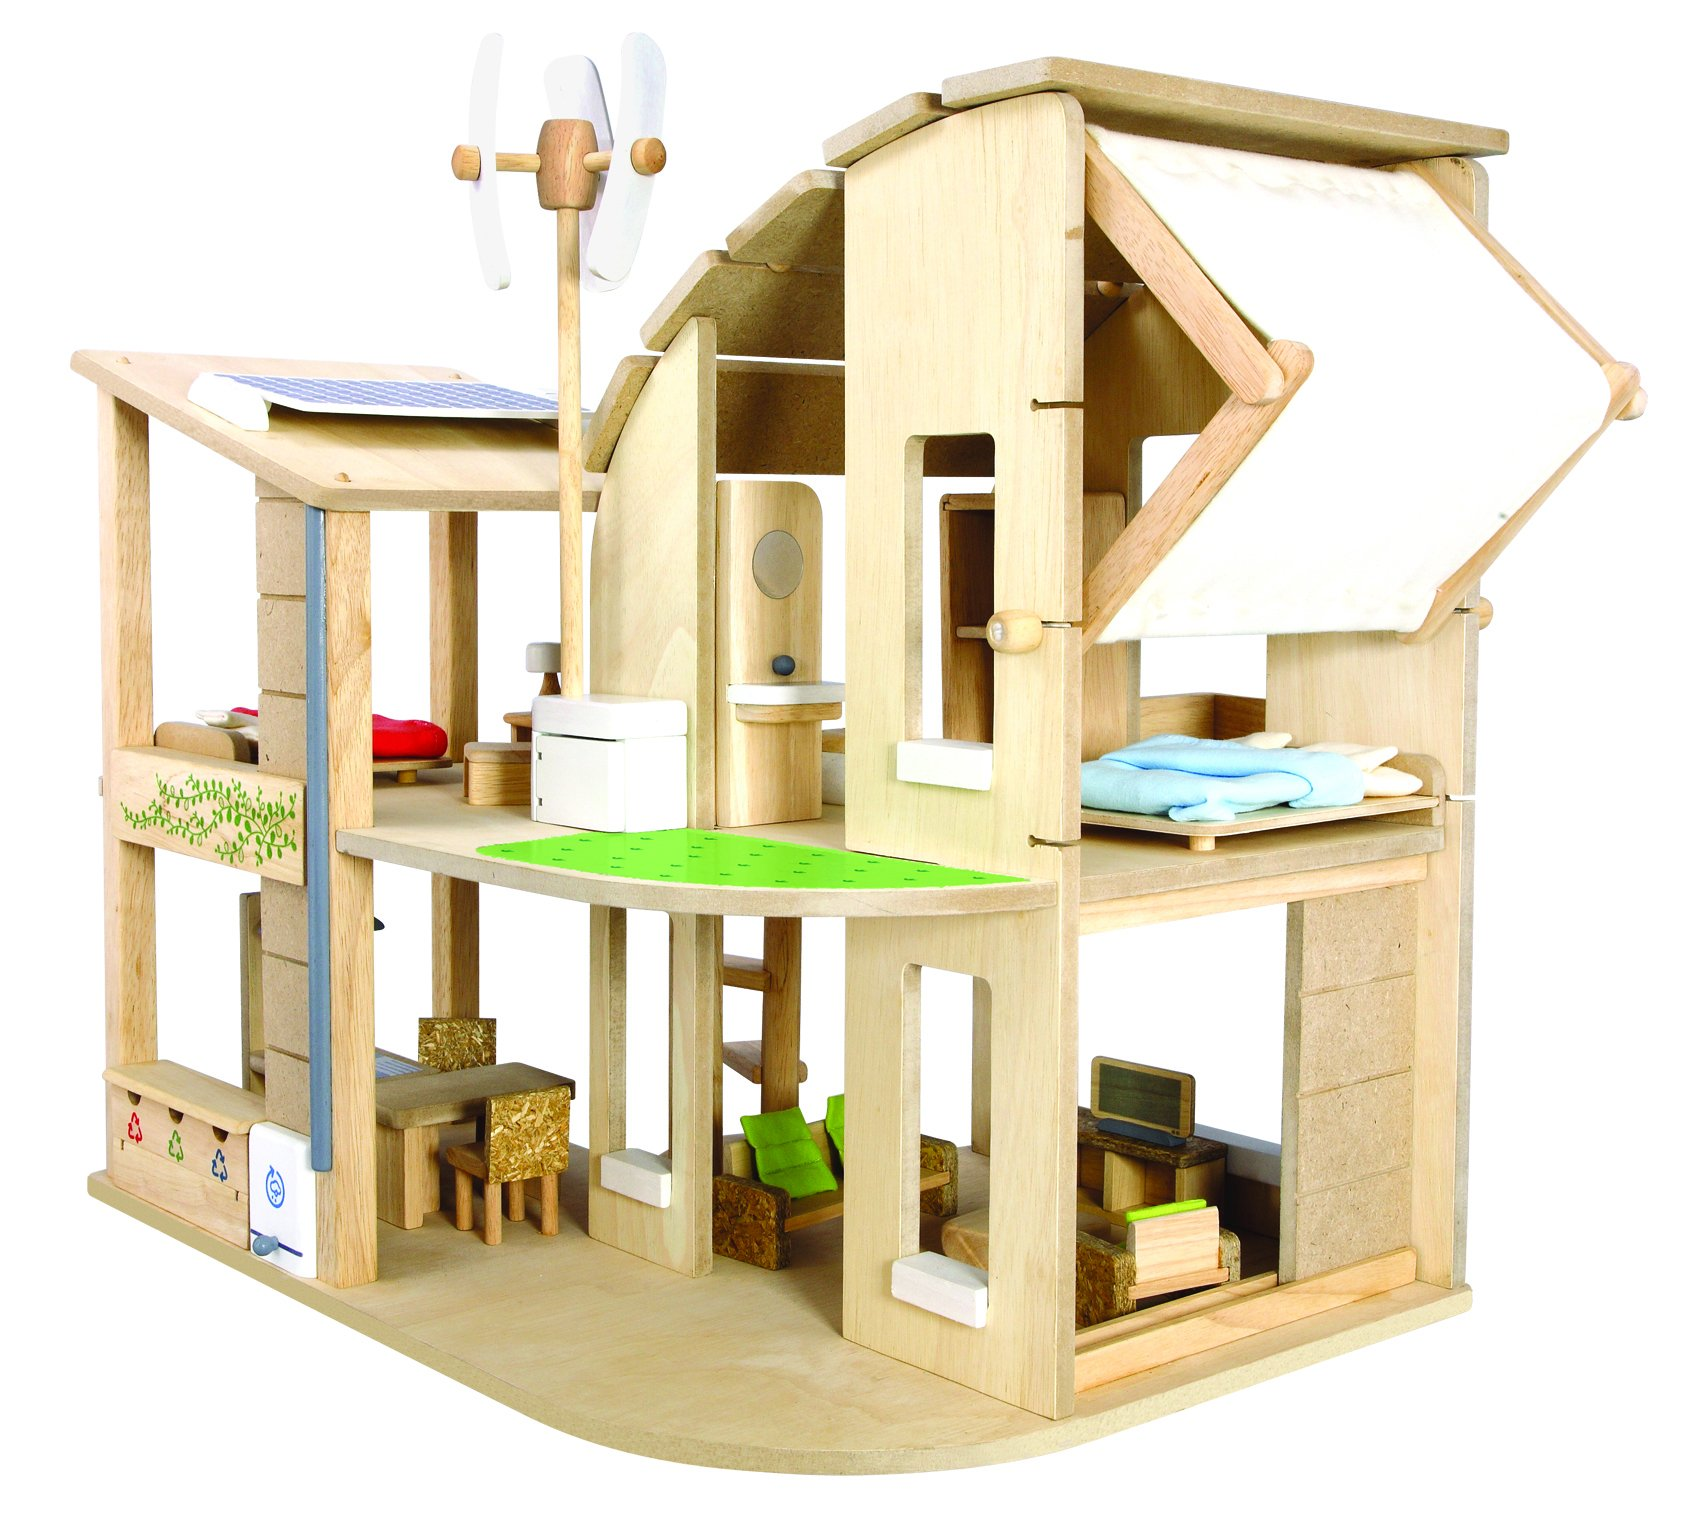 Plan Toys The Green Dollhouse with Furniture